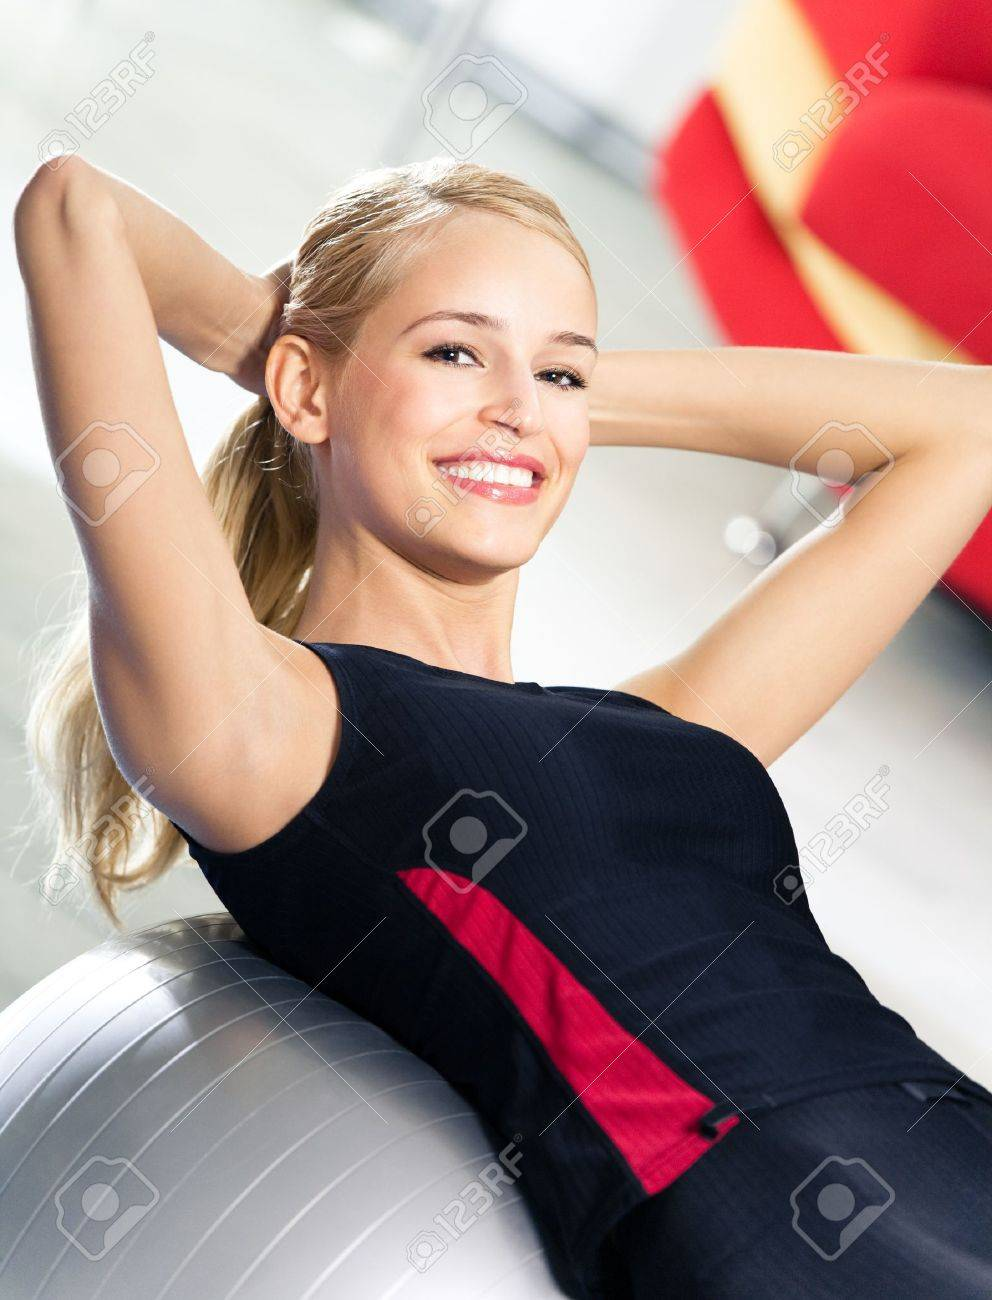 Portrait of young happy smiling woman in sportswear, doing fitness exercise with fit ball, indoors Stock Photo - 8266014